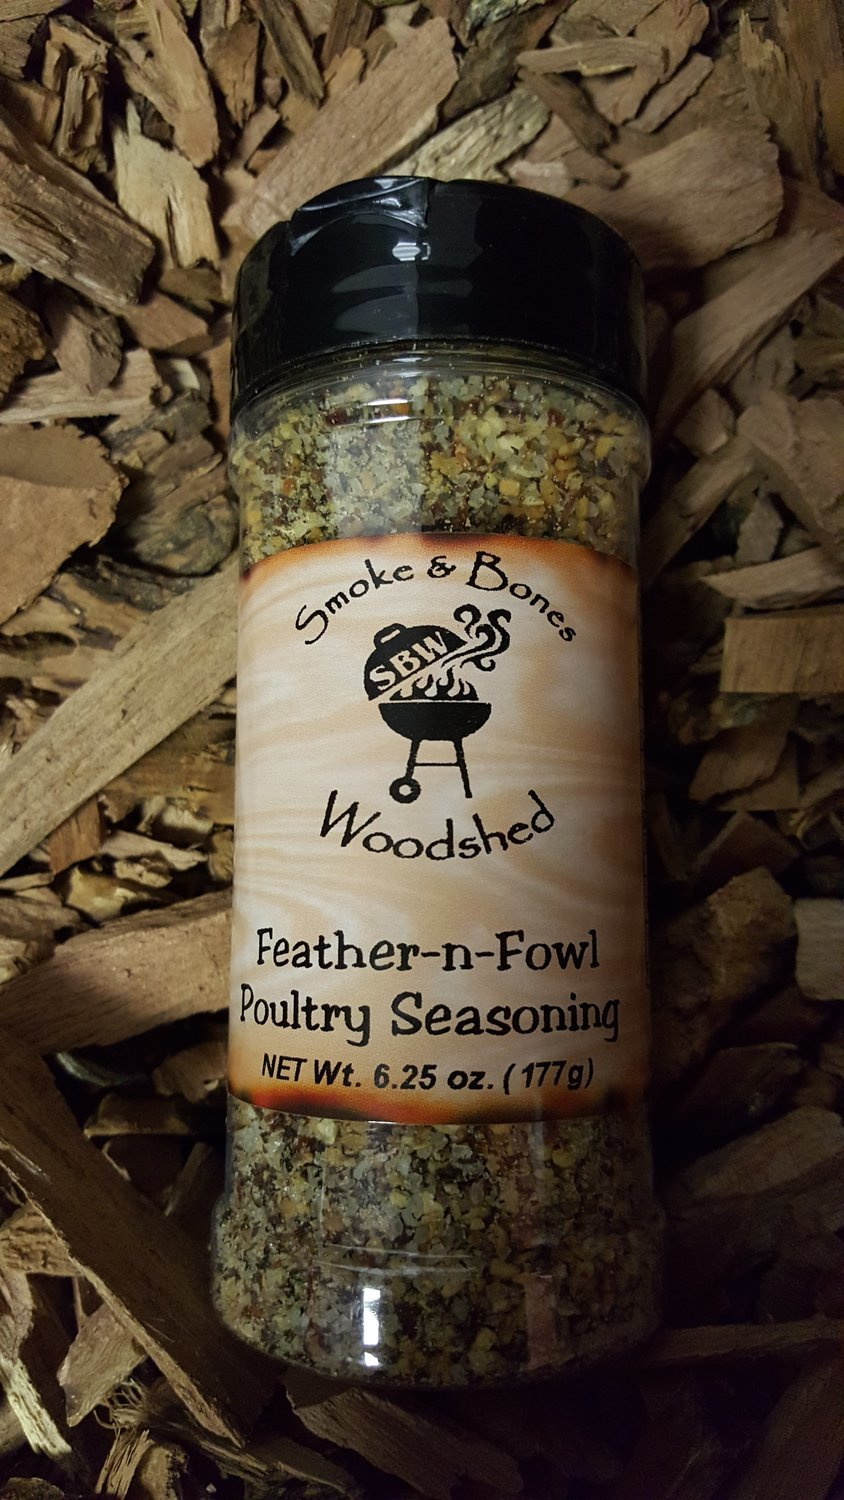 SBW, Feather N Foul Poultry Seasoning